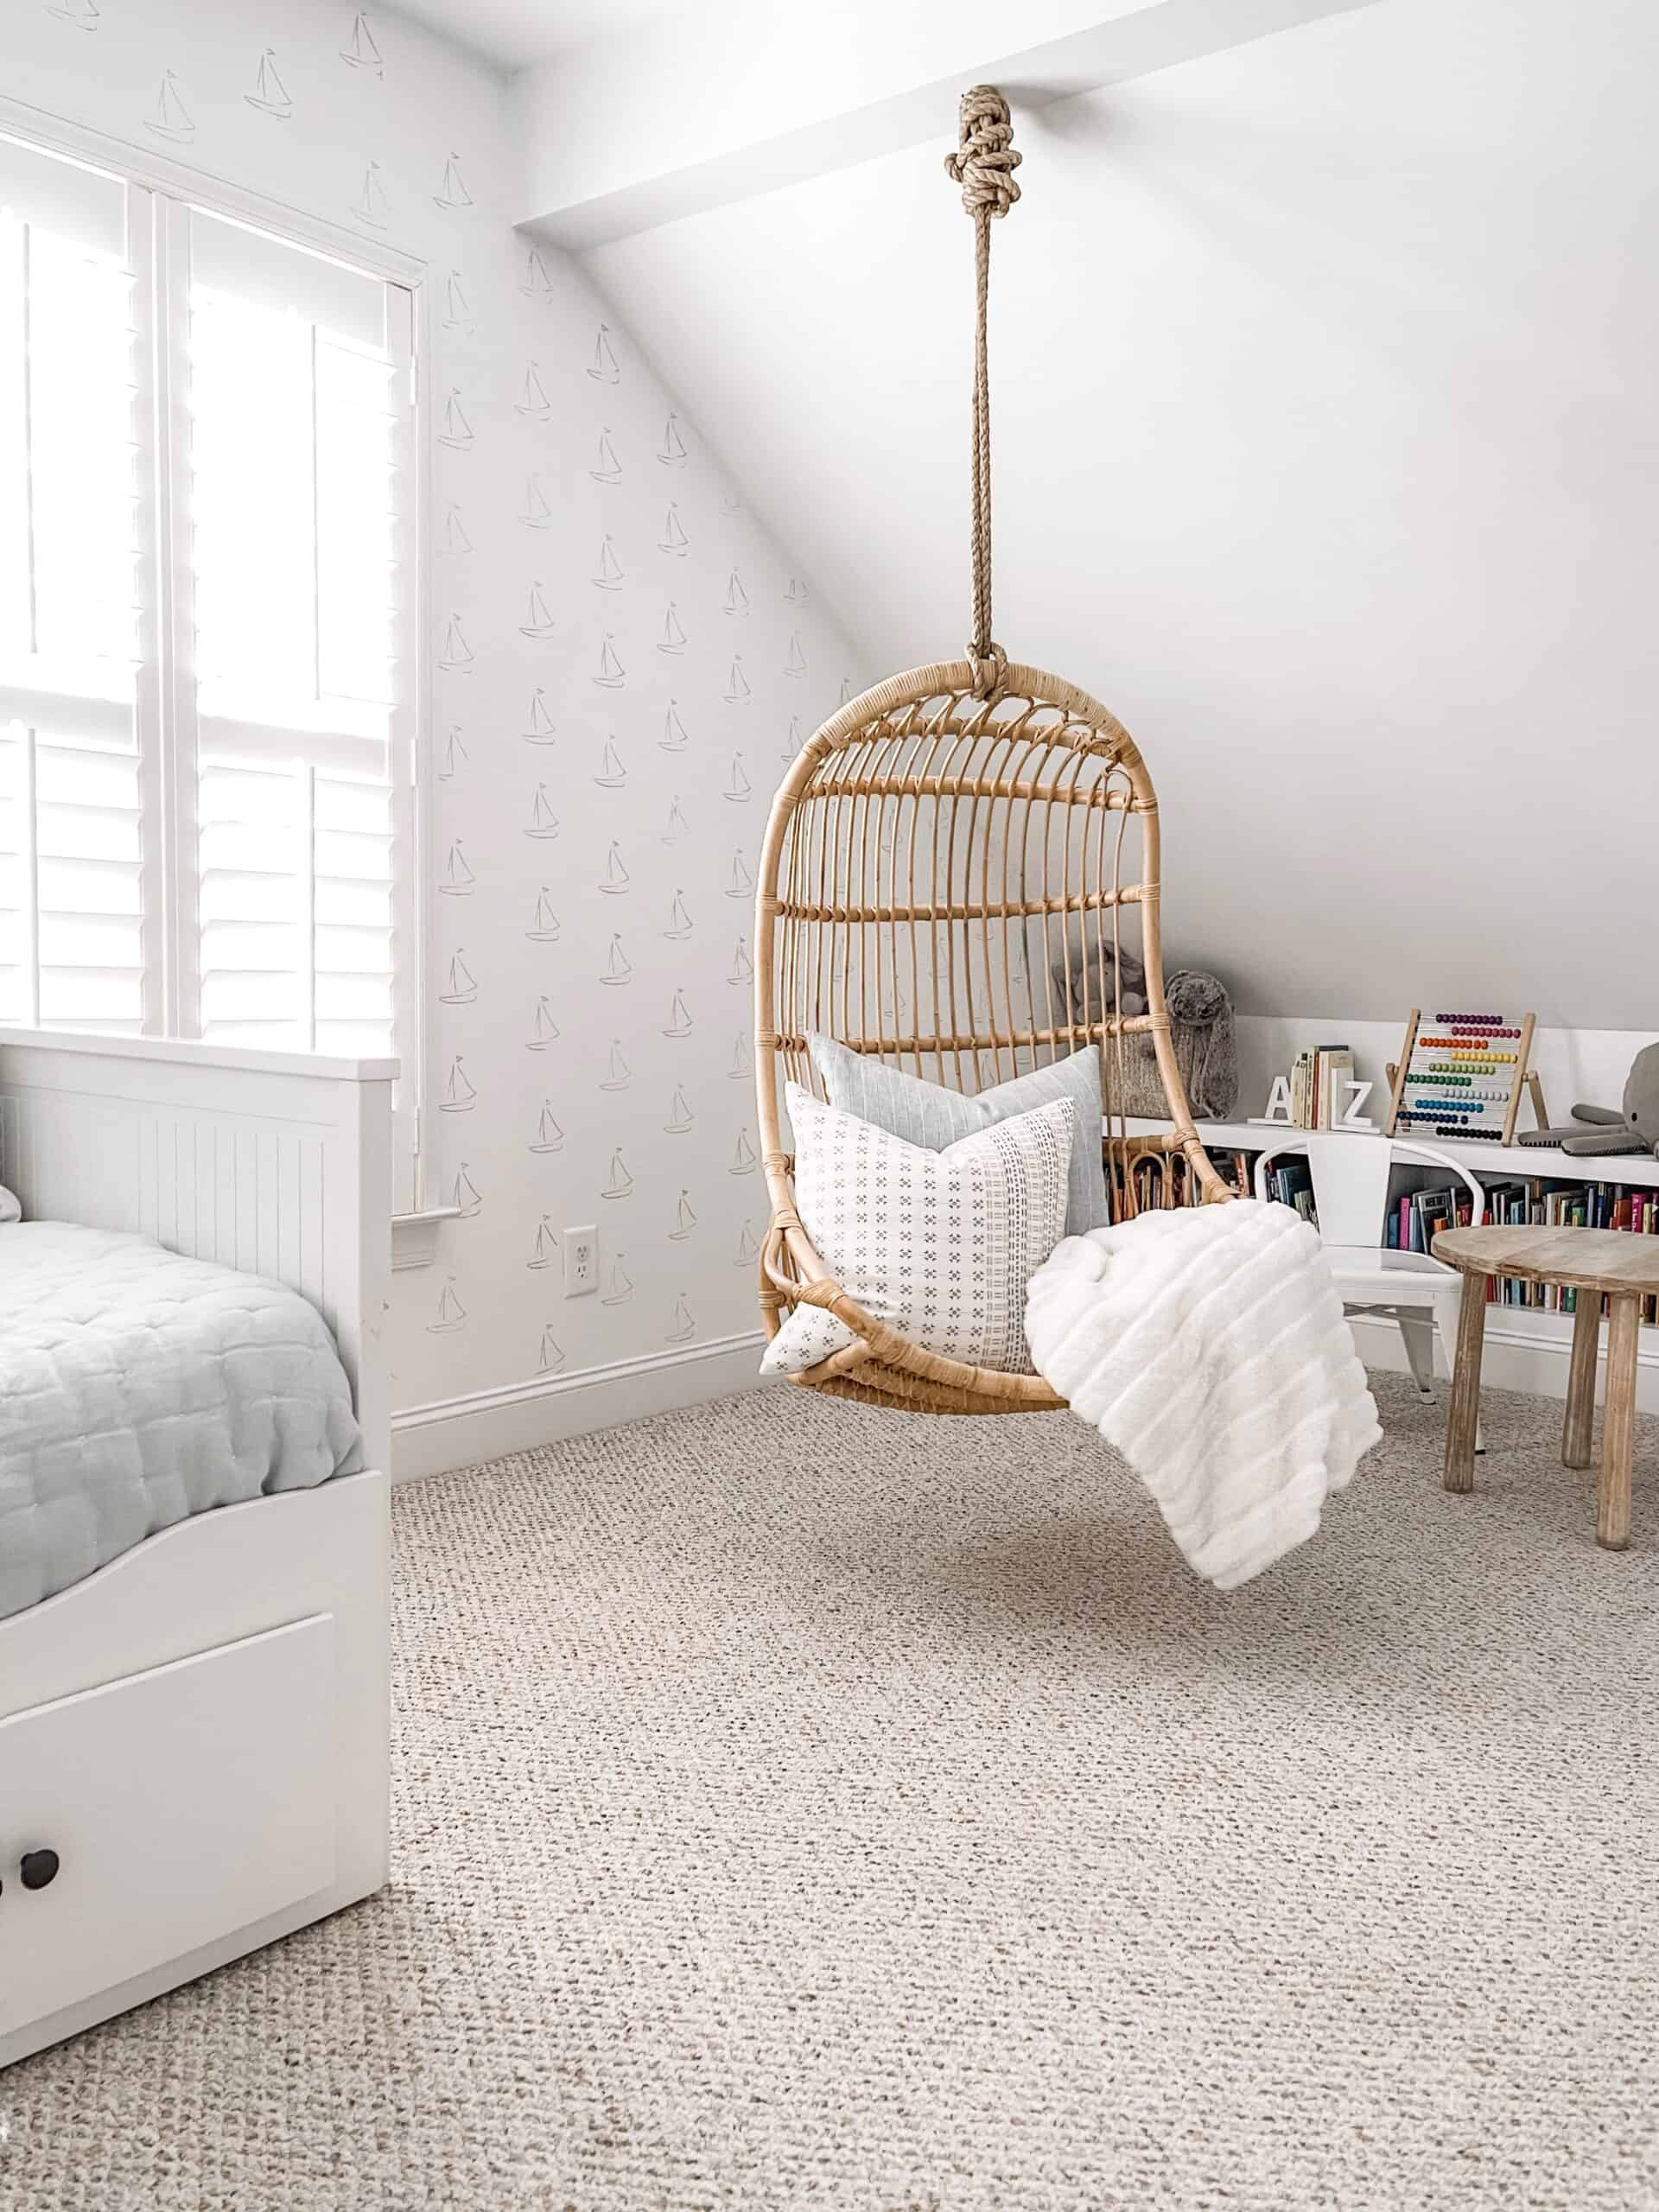 Blue and white play room with a hanging rattan chair from Serena & Lily